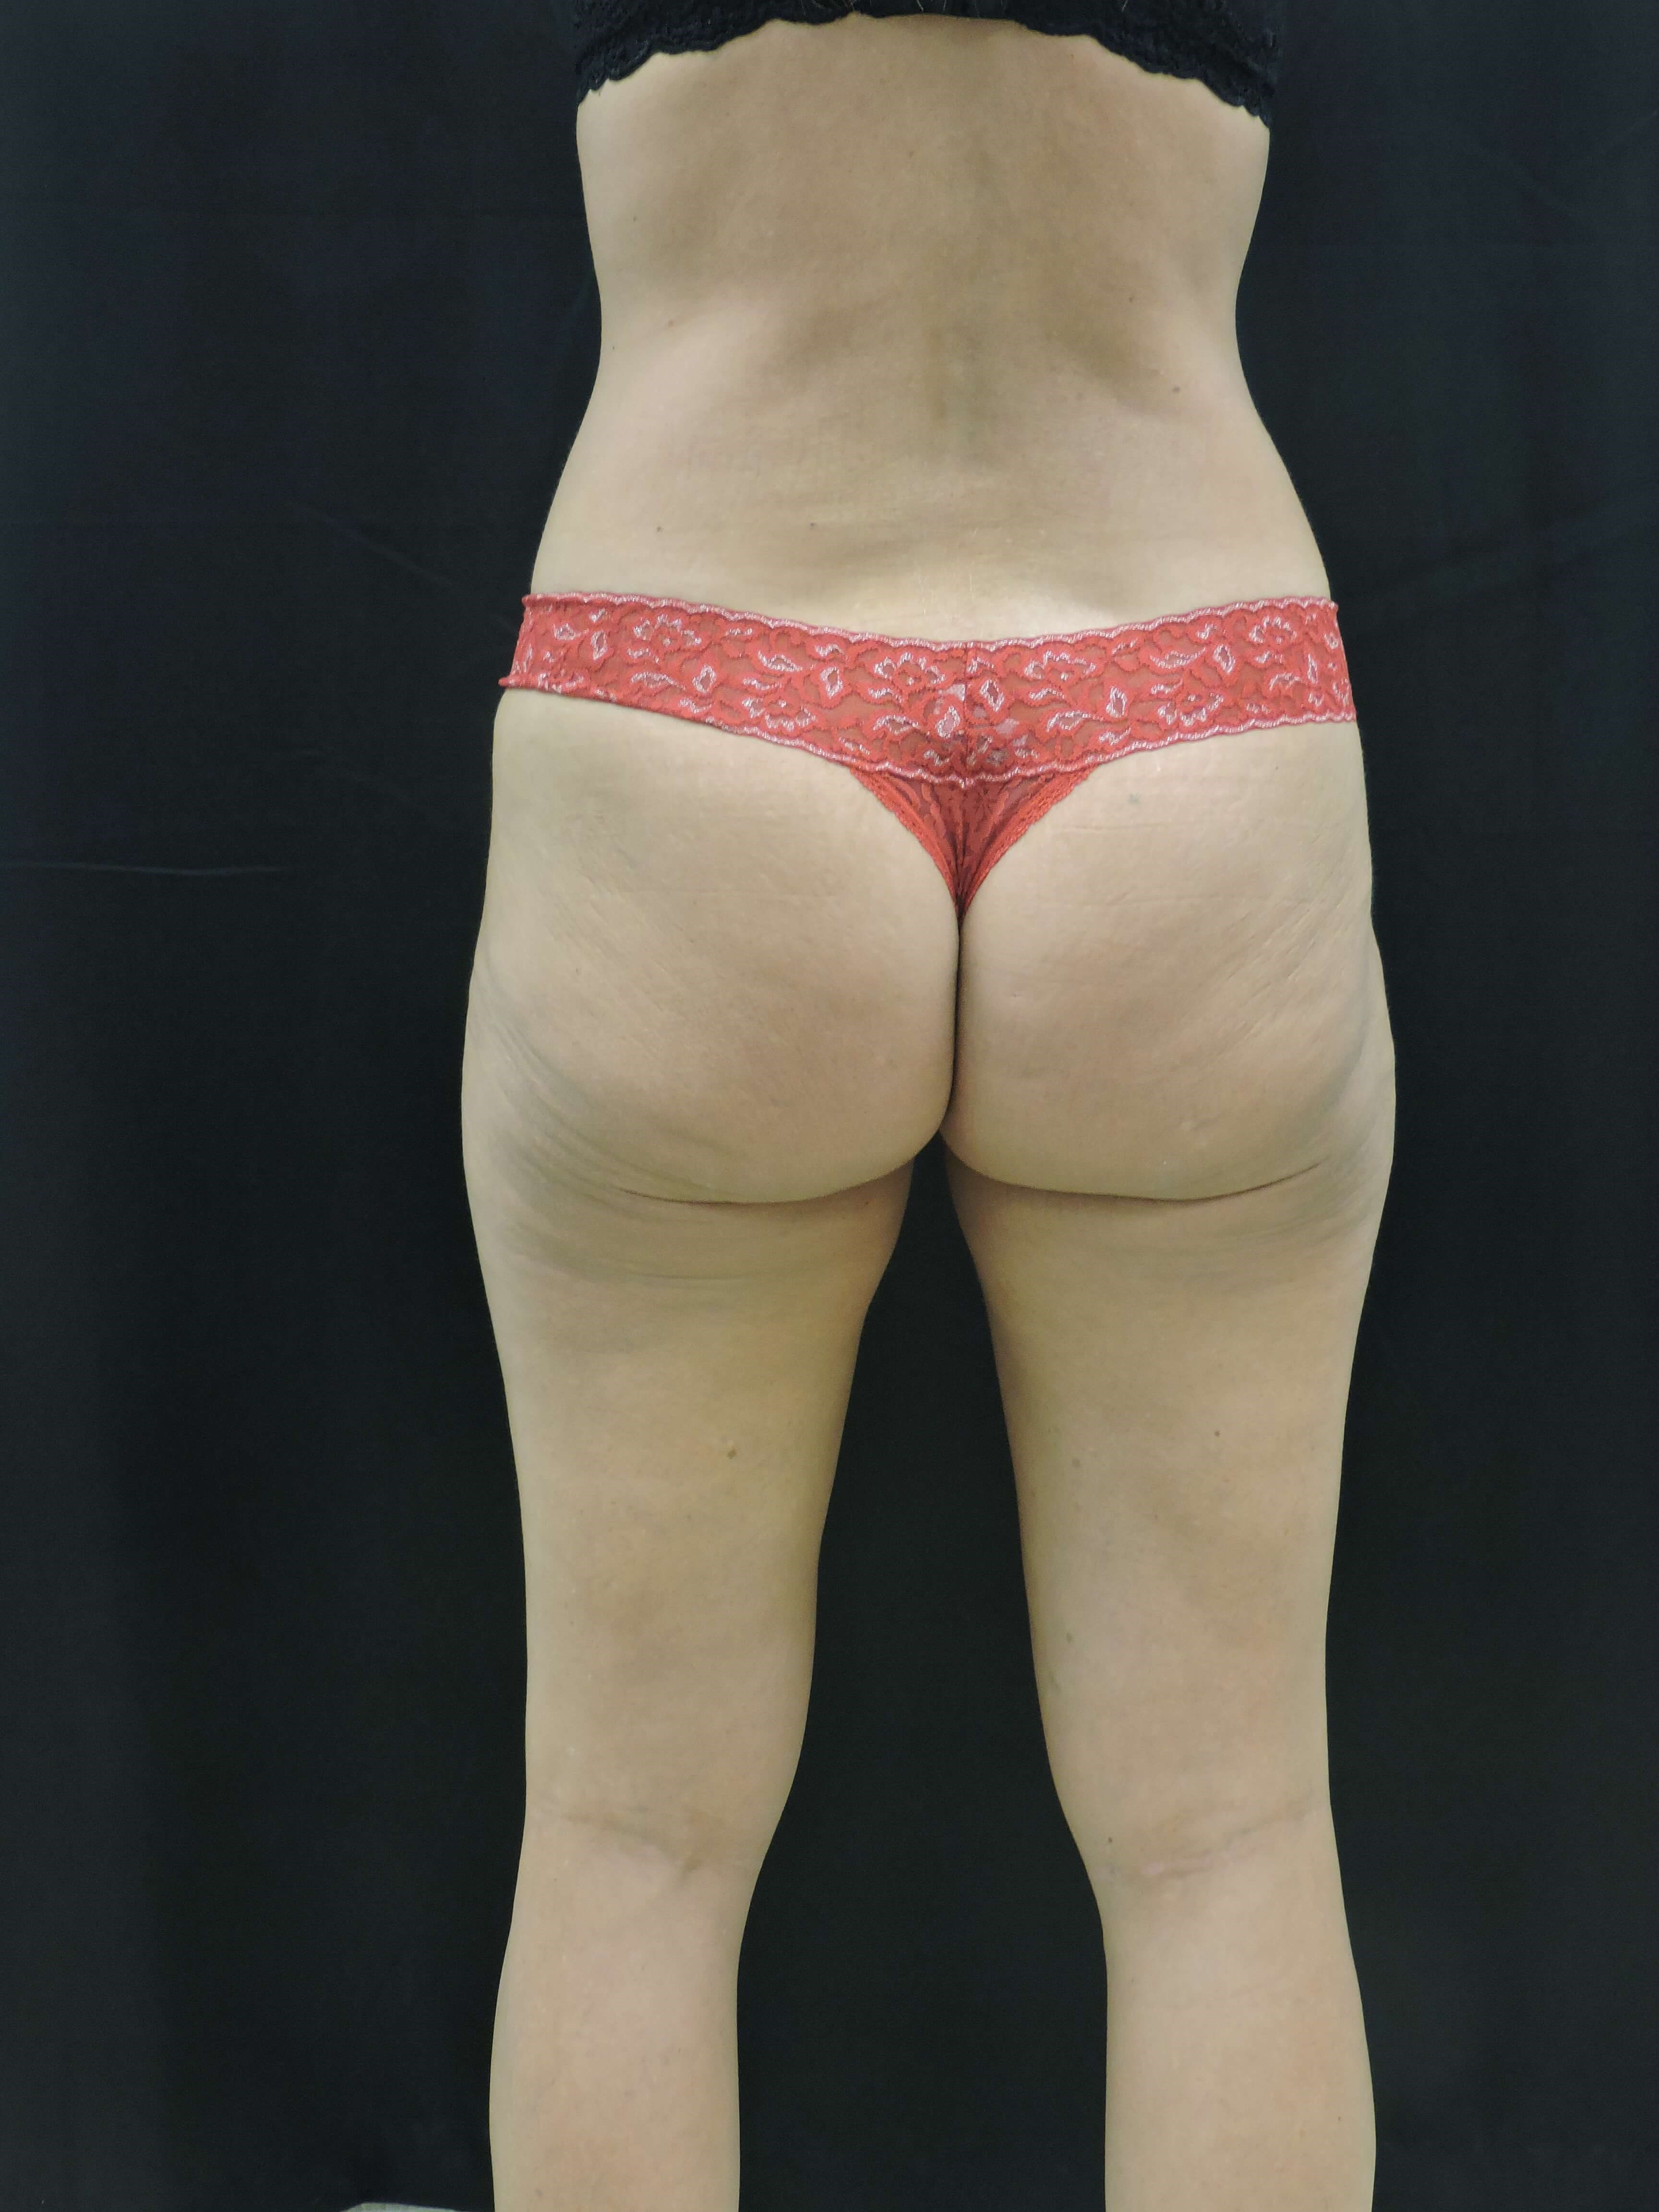 Thigh Liposuction After